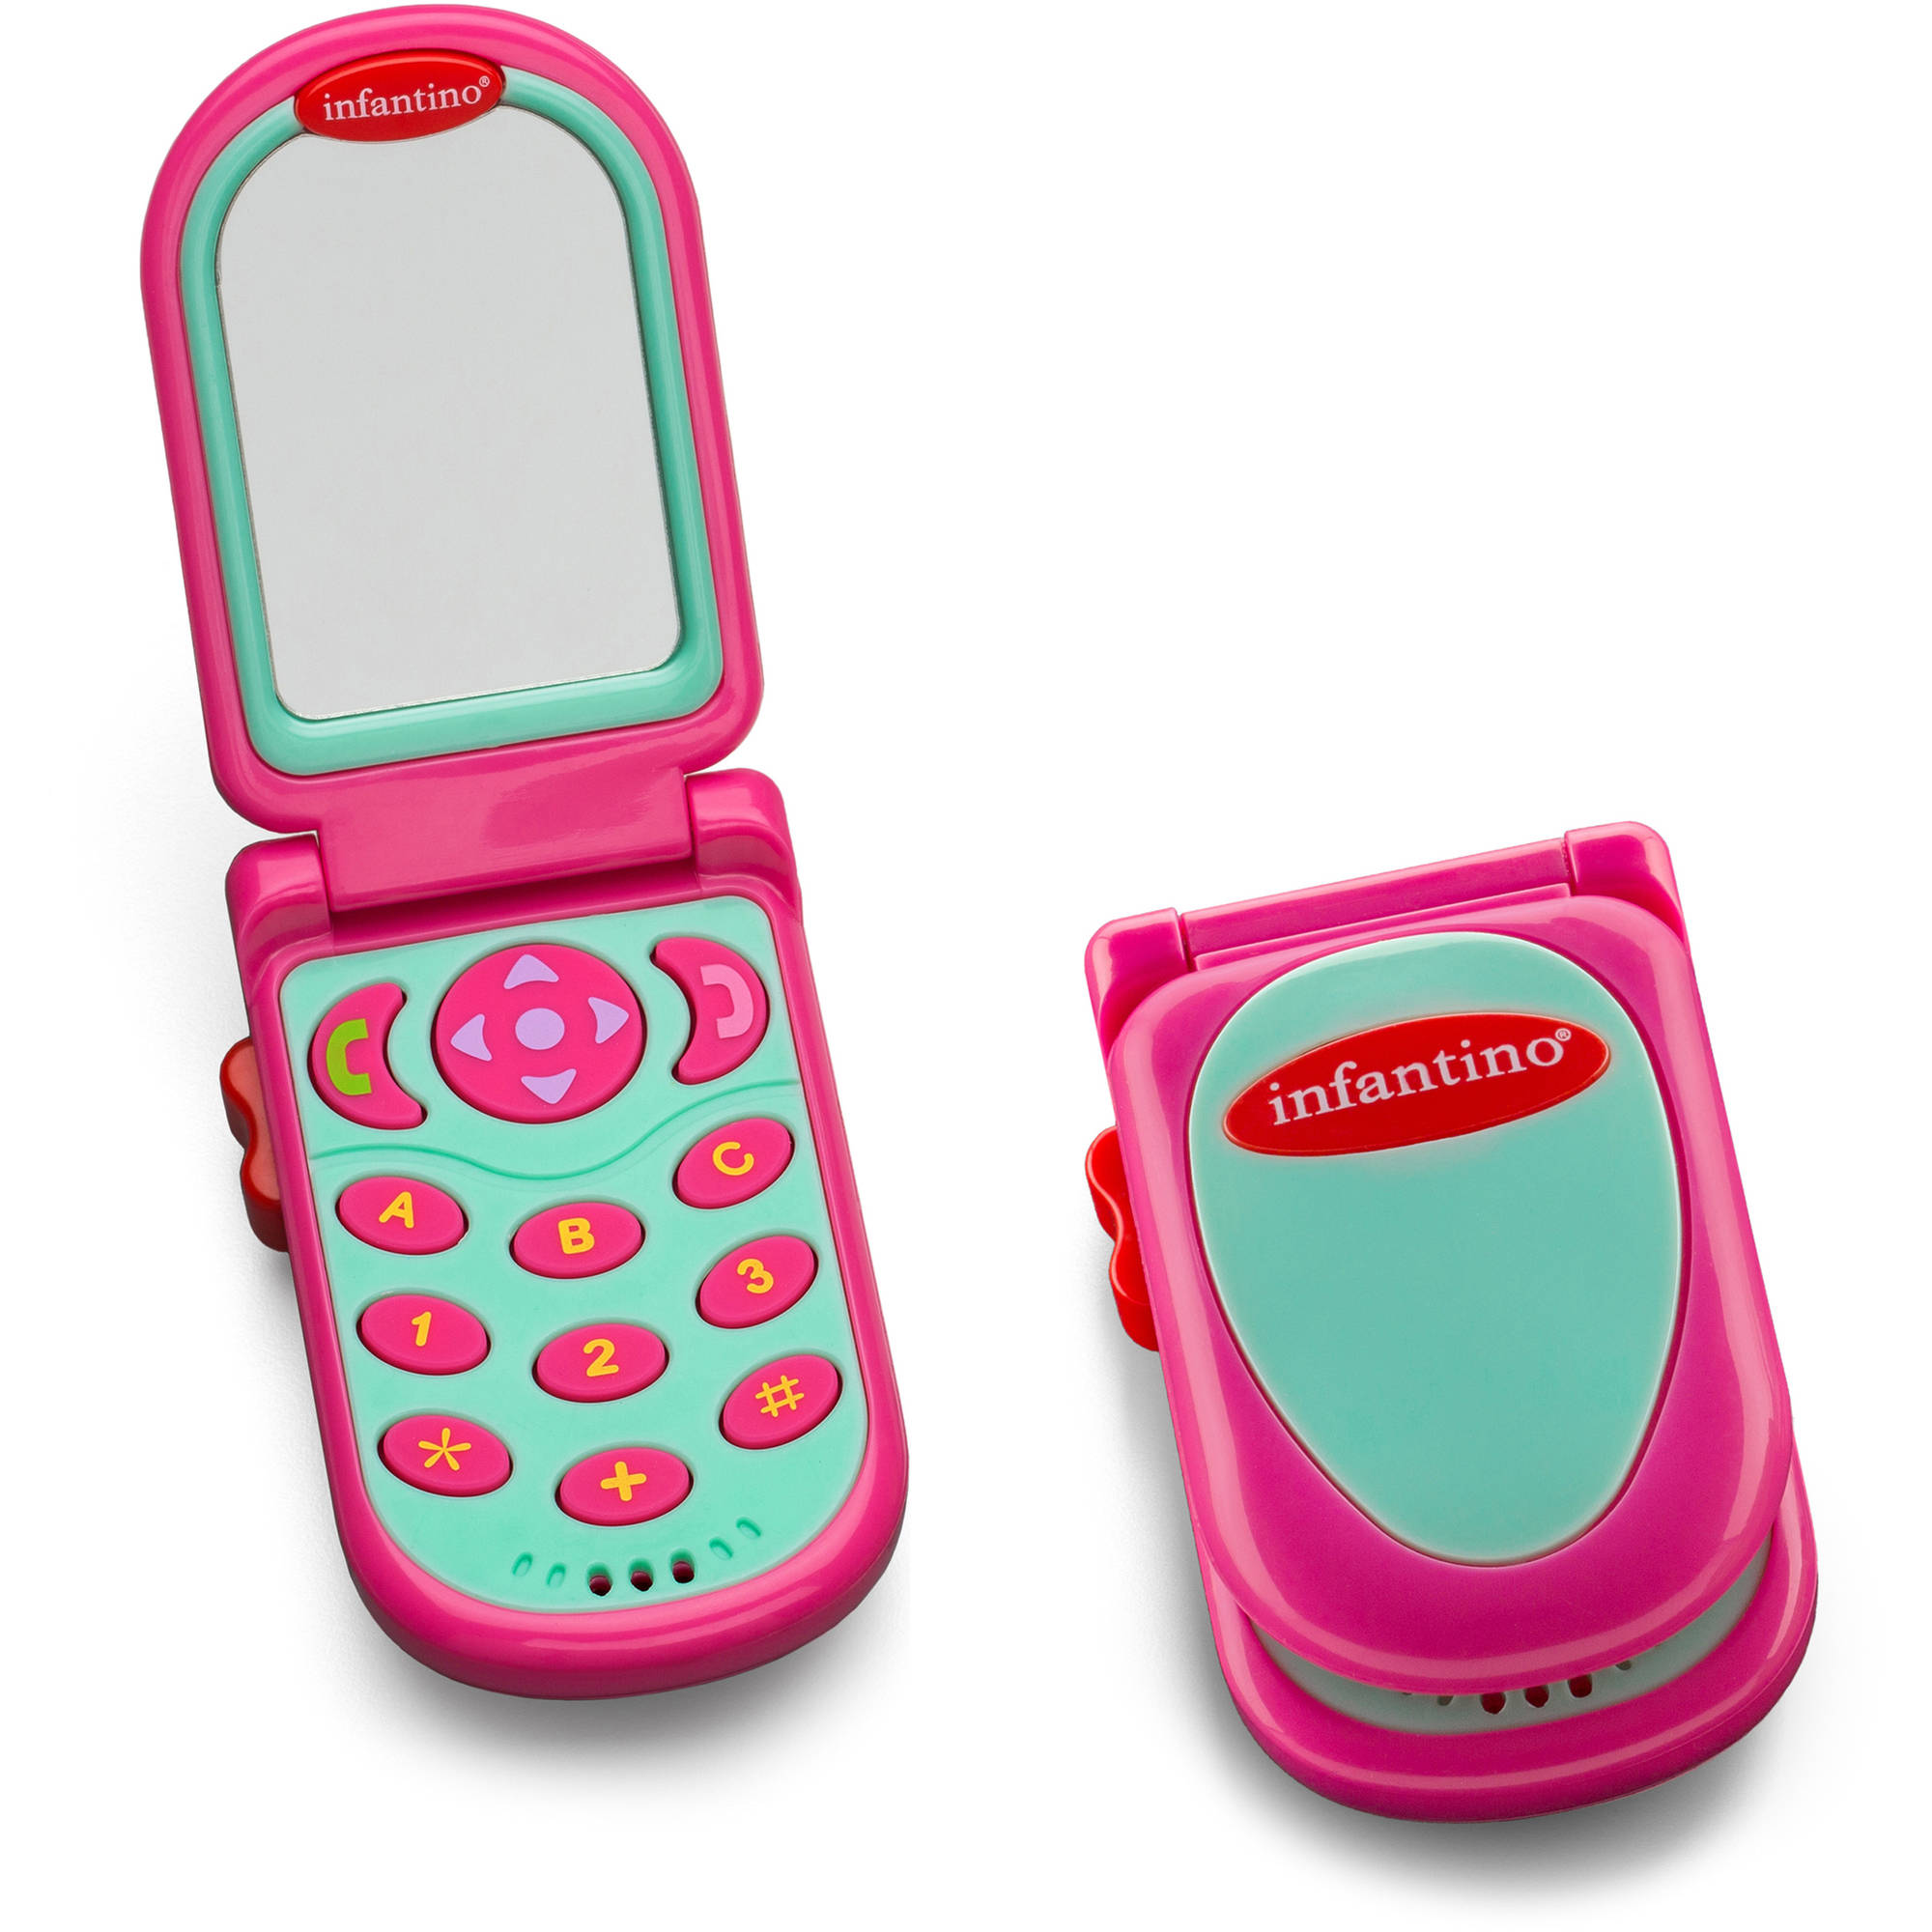 Infantino Flip & Peek Fun Phone, Pink by Infantino